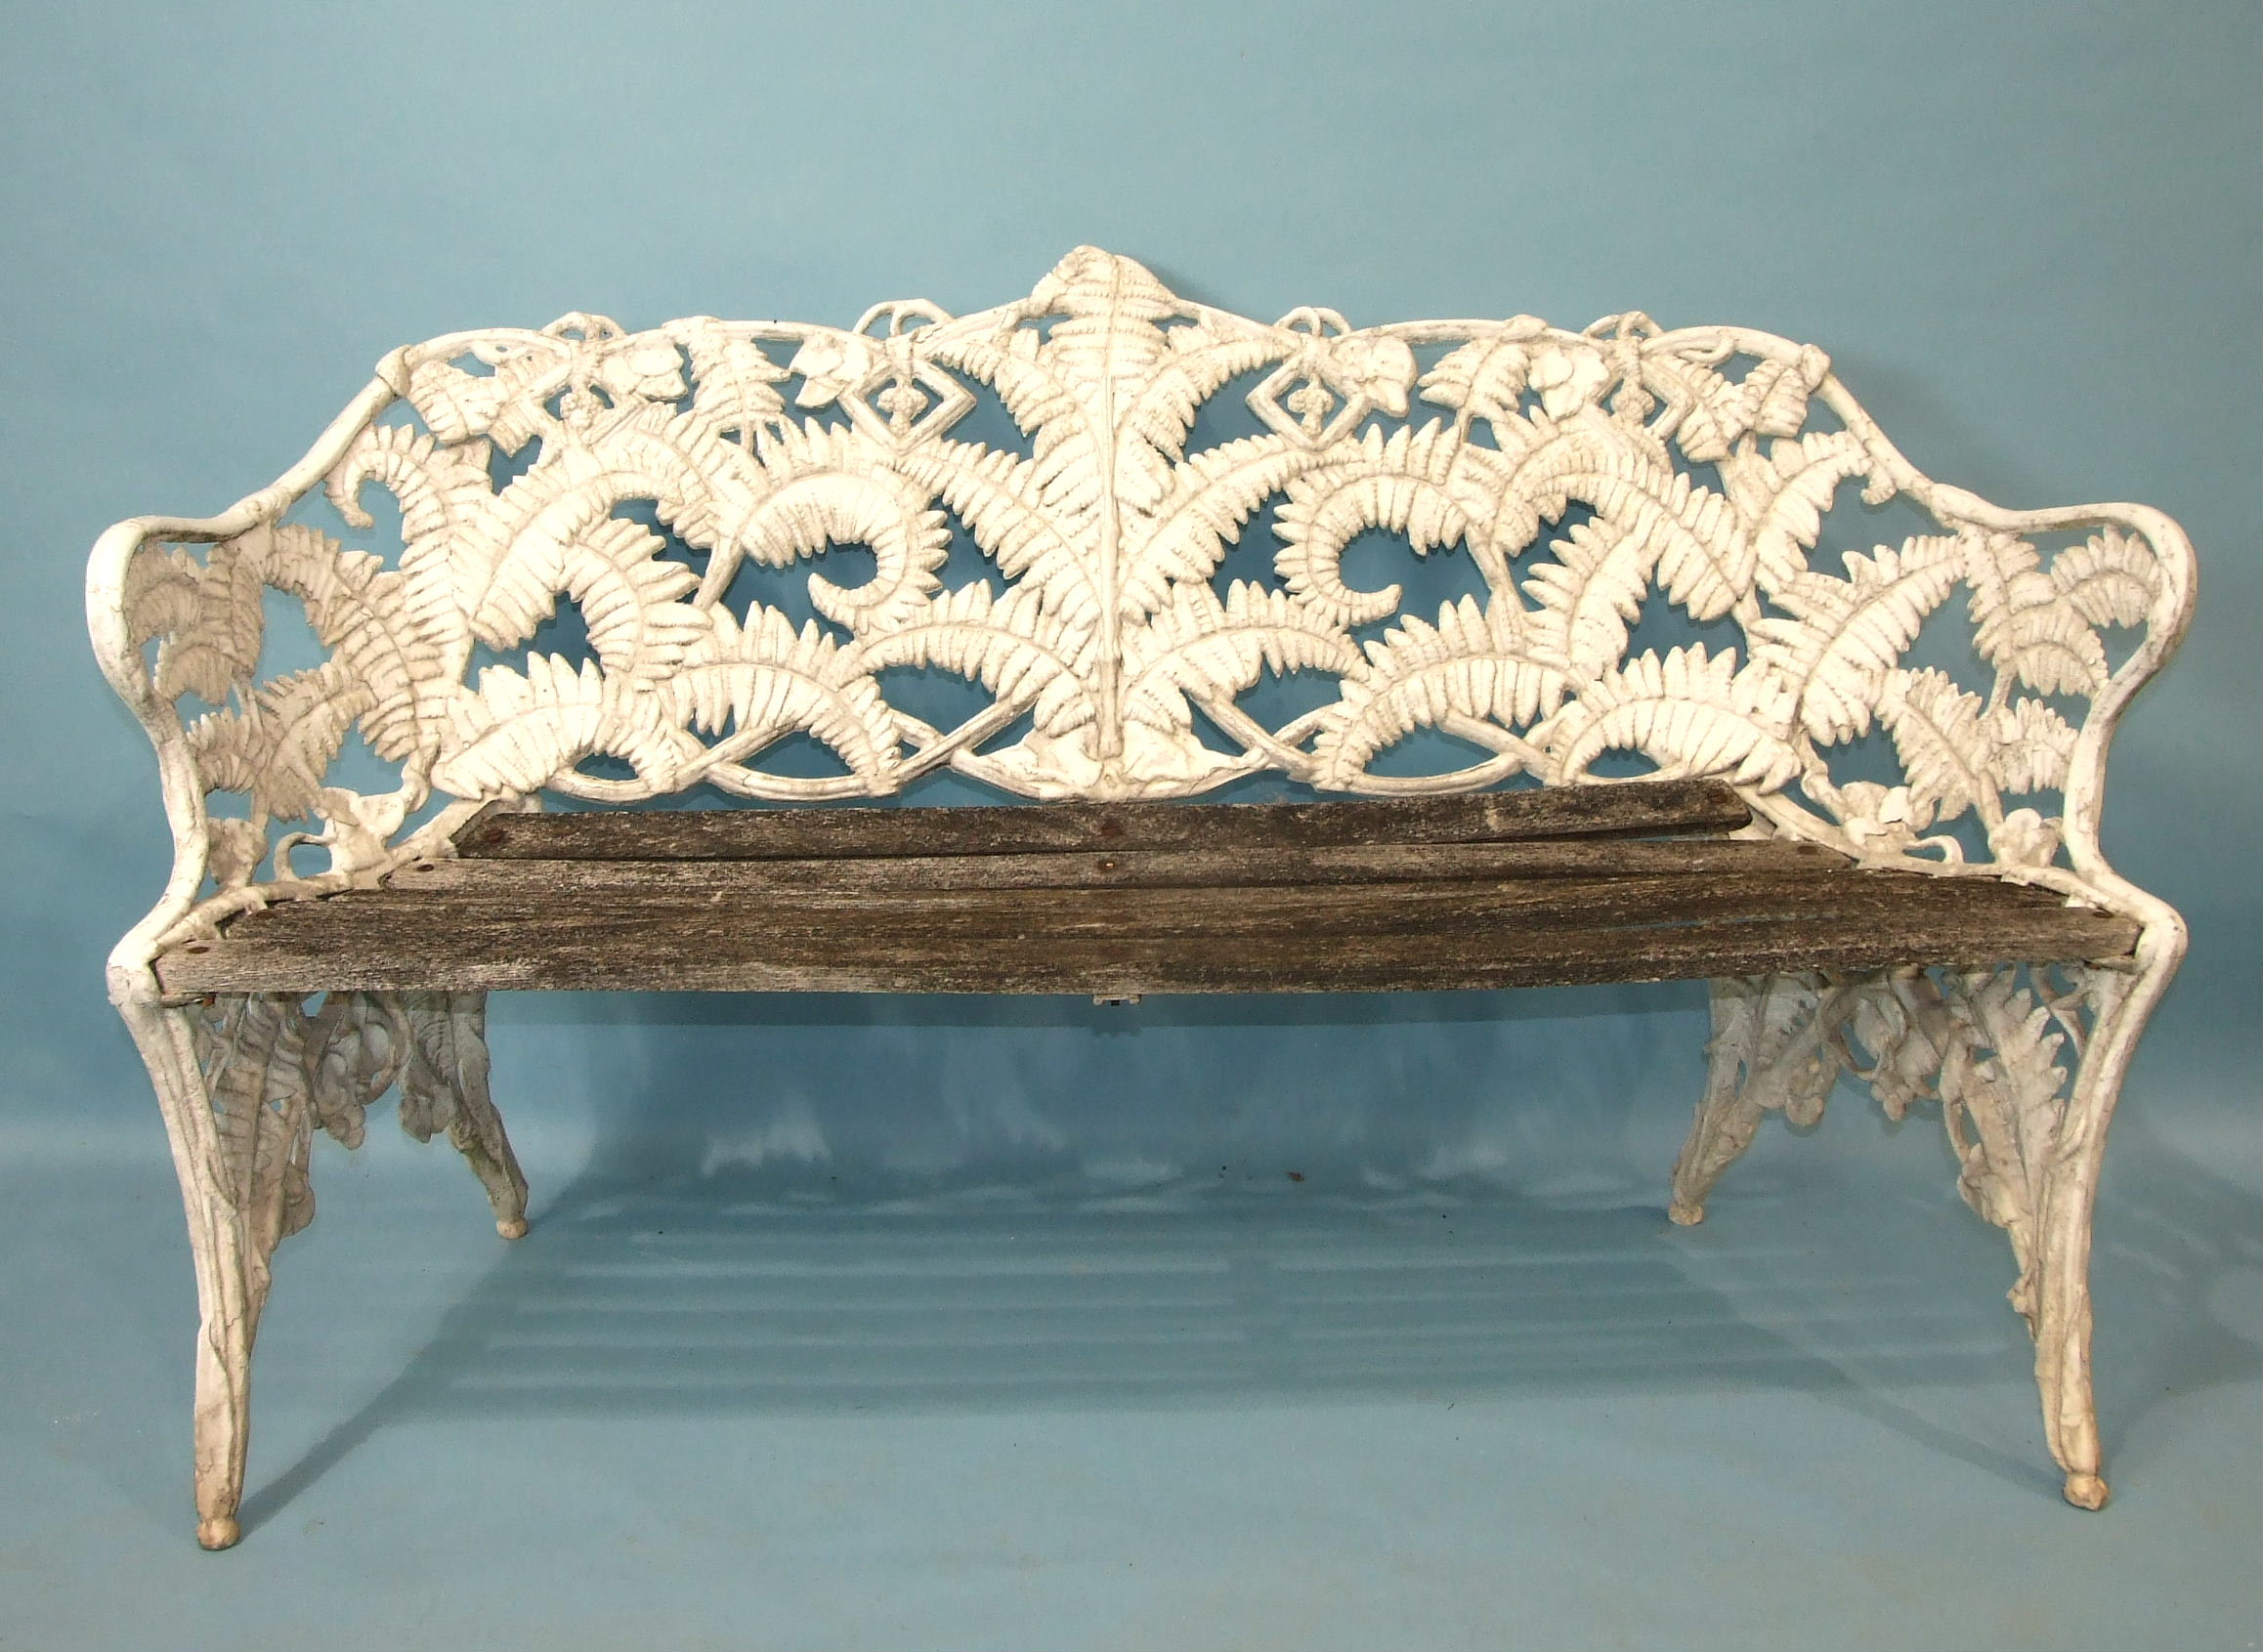 A cast alloy Coalbrookedale-style fern pattern garden bench, (the wooden slatted seat in need of